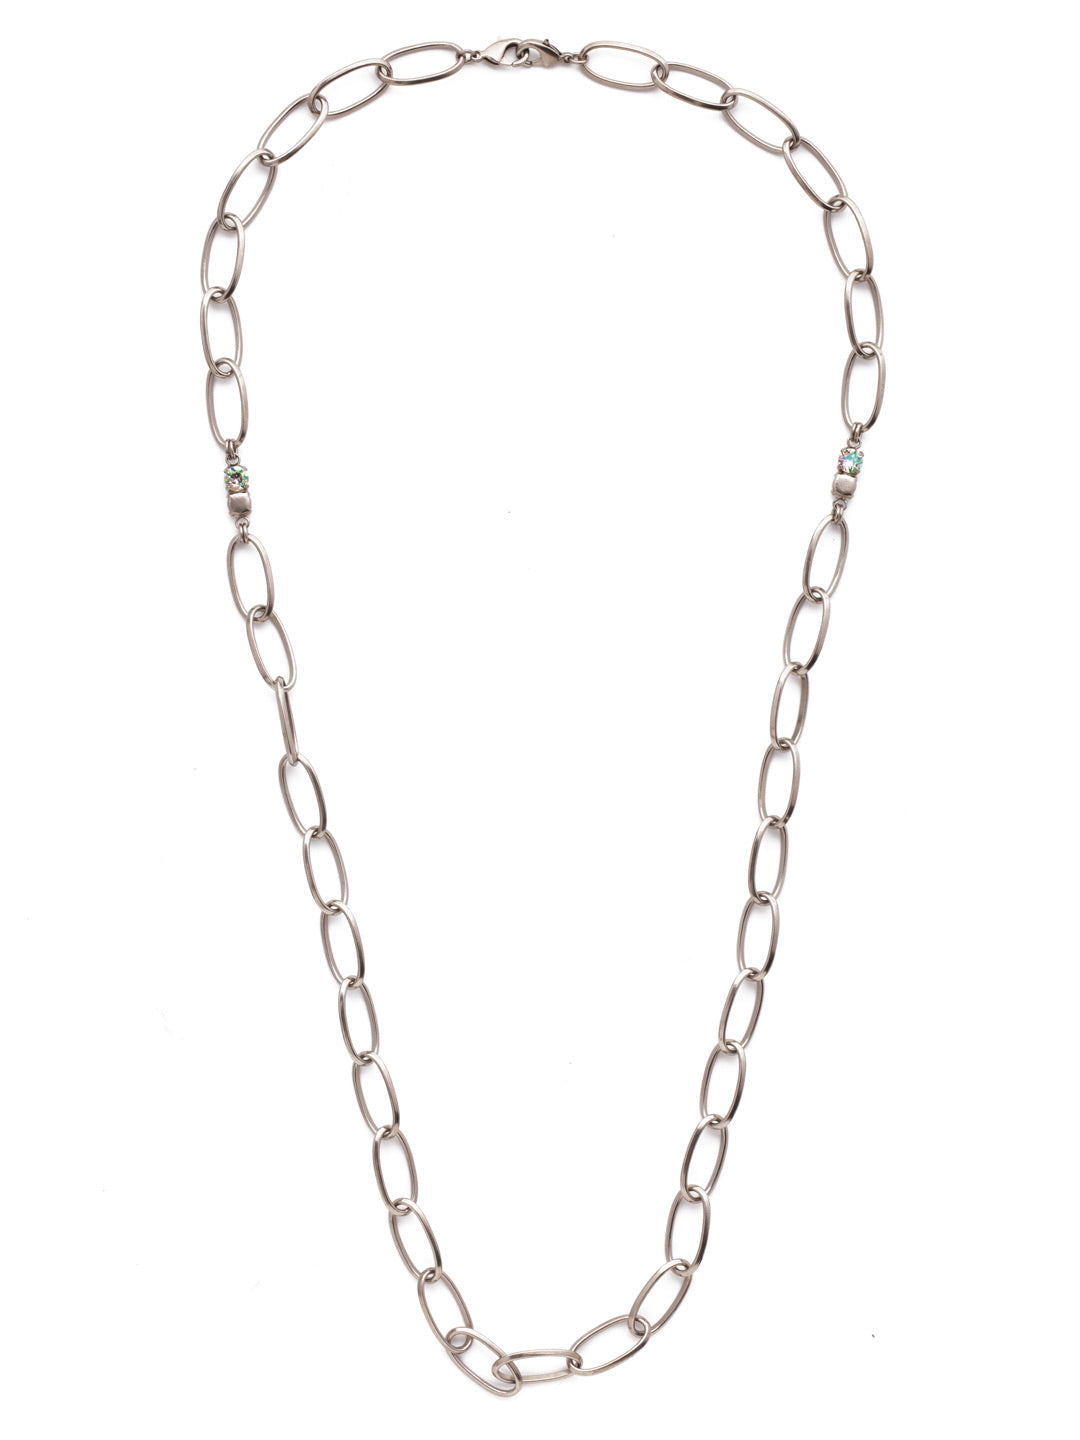 Tamara Long Necklace - NEP32ASCRE